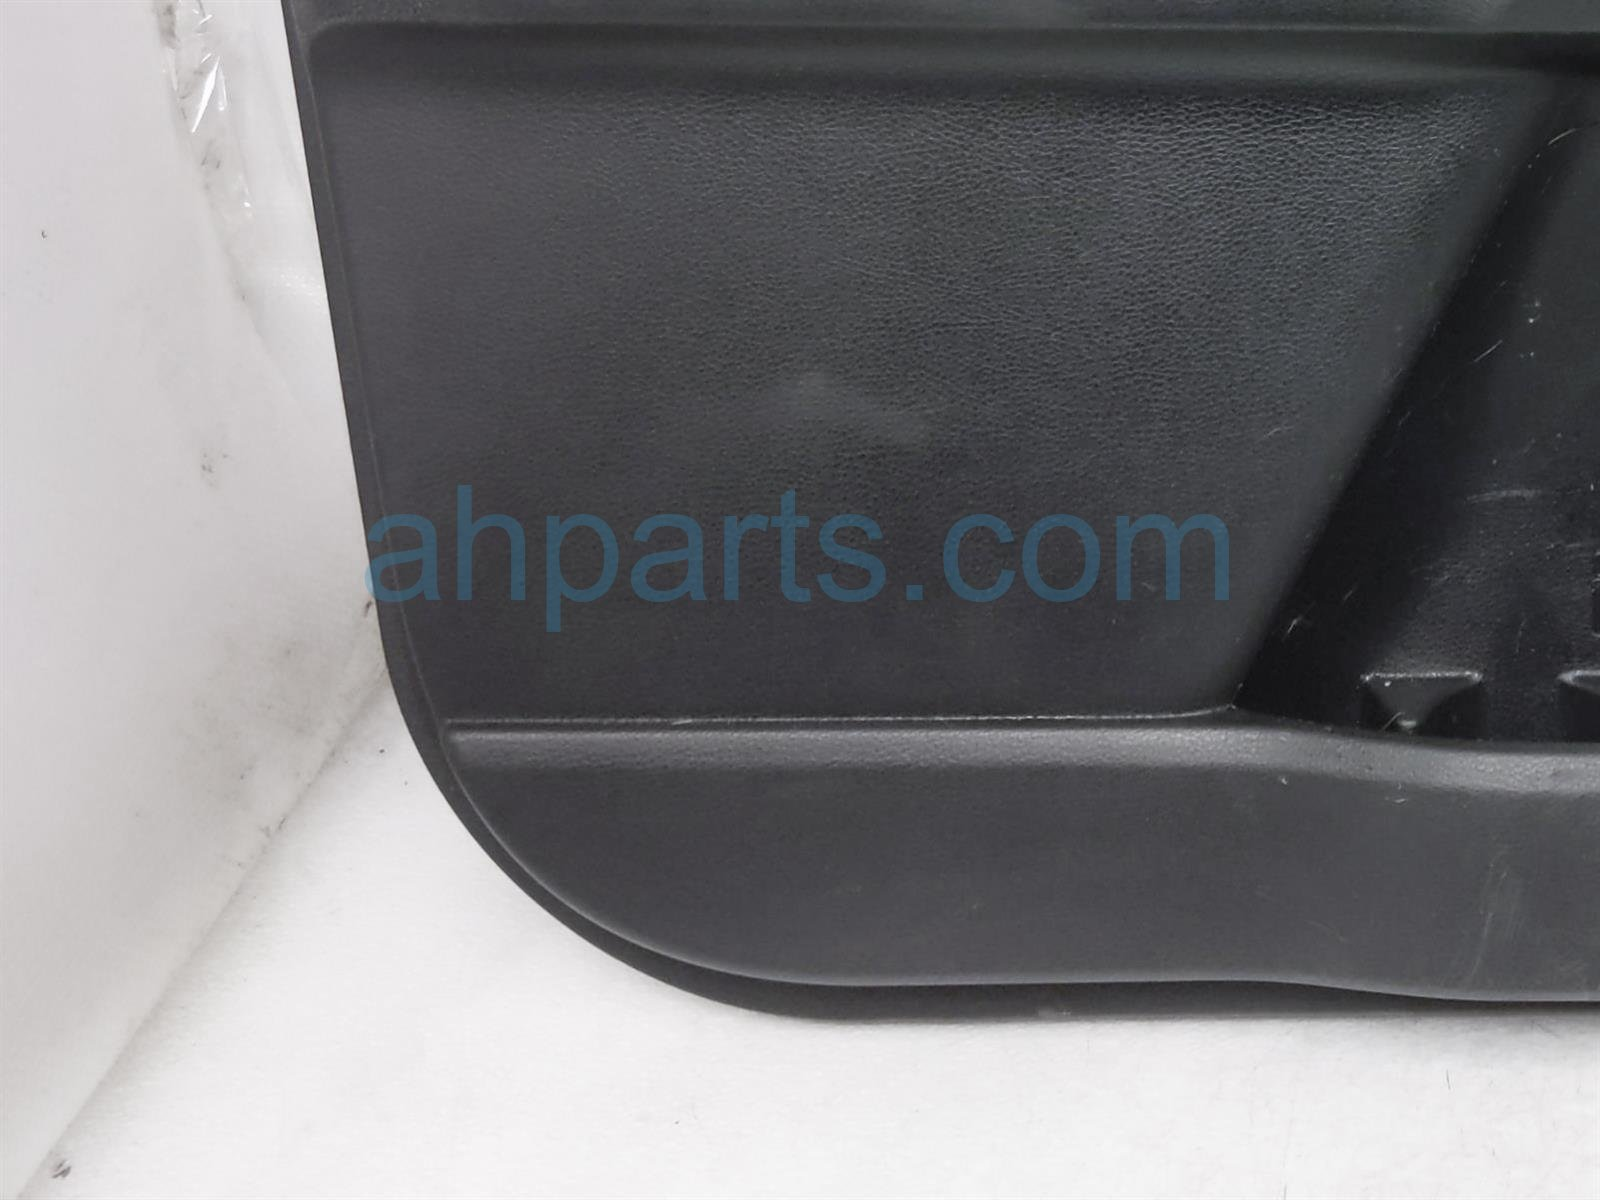 2017 Toyota Tacoma Trim / Liner Front Driver Interior Door Panel   Black 67620 04470 C5 Replacement